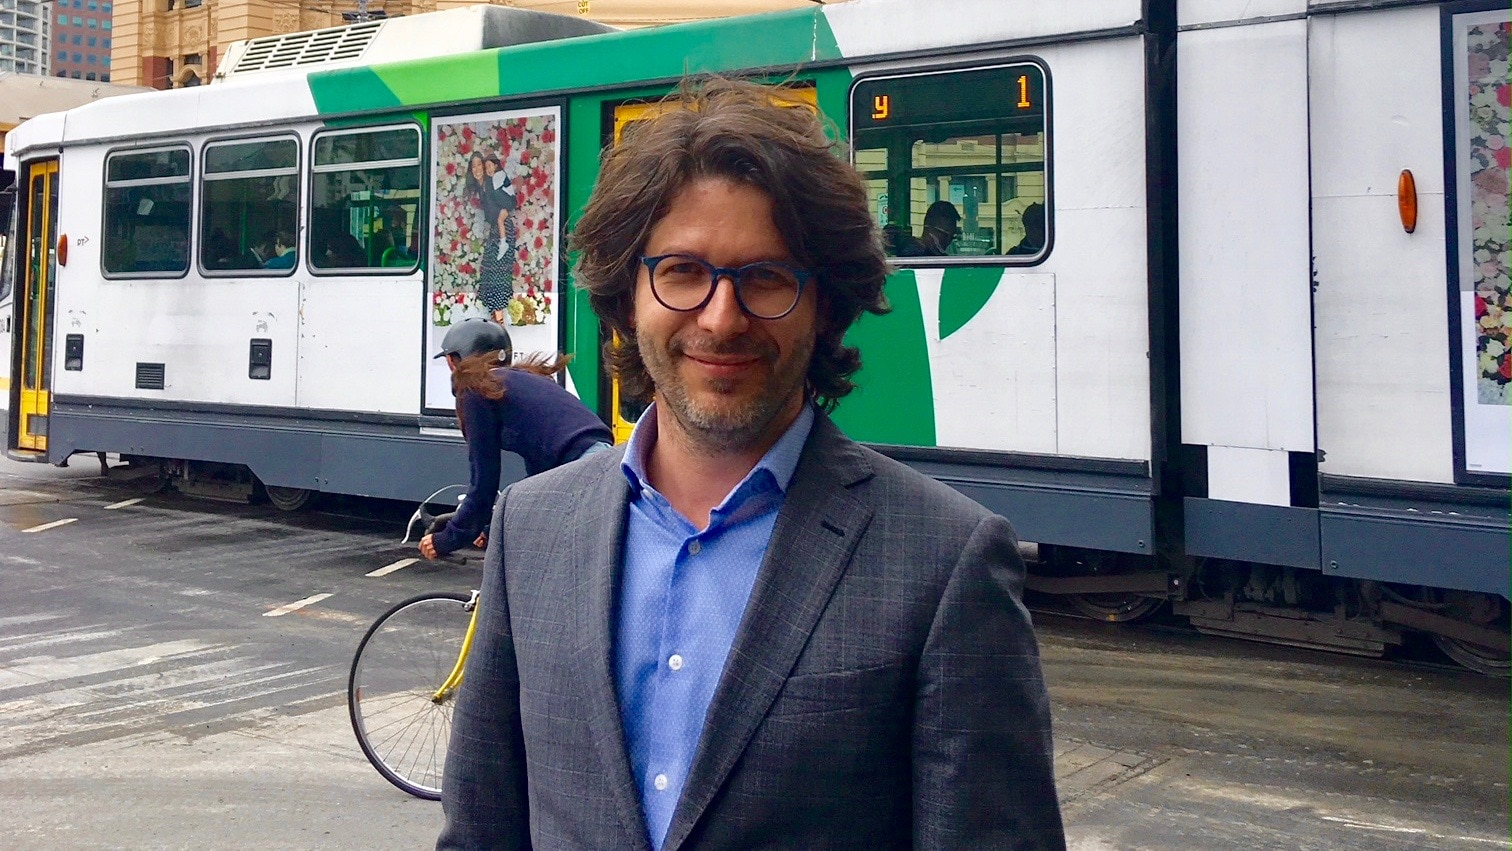 Alberto Furlan in Melbourne, where he now resides